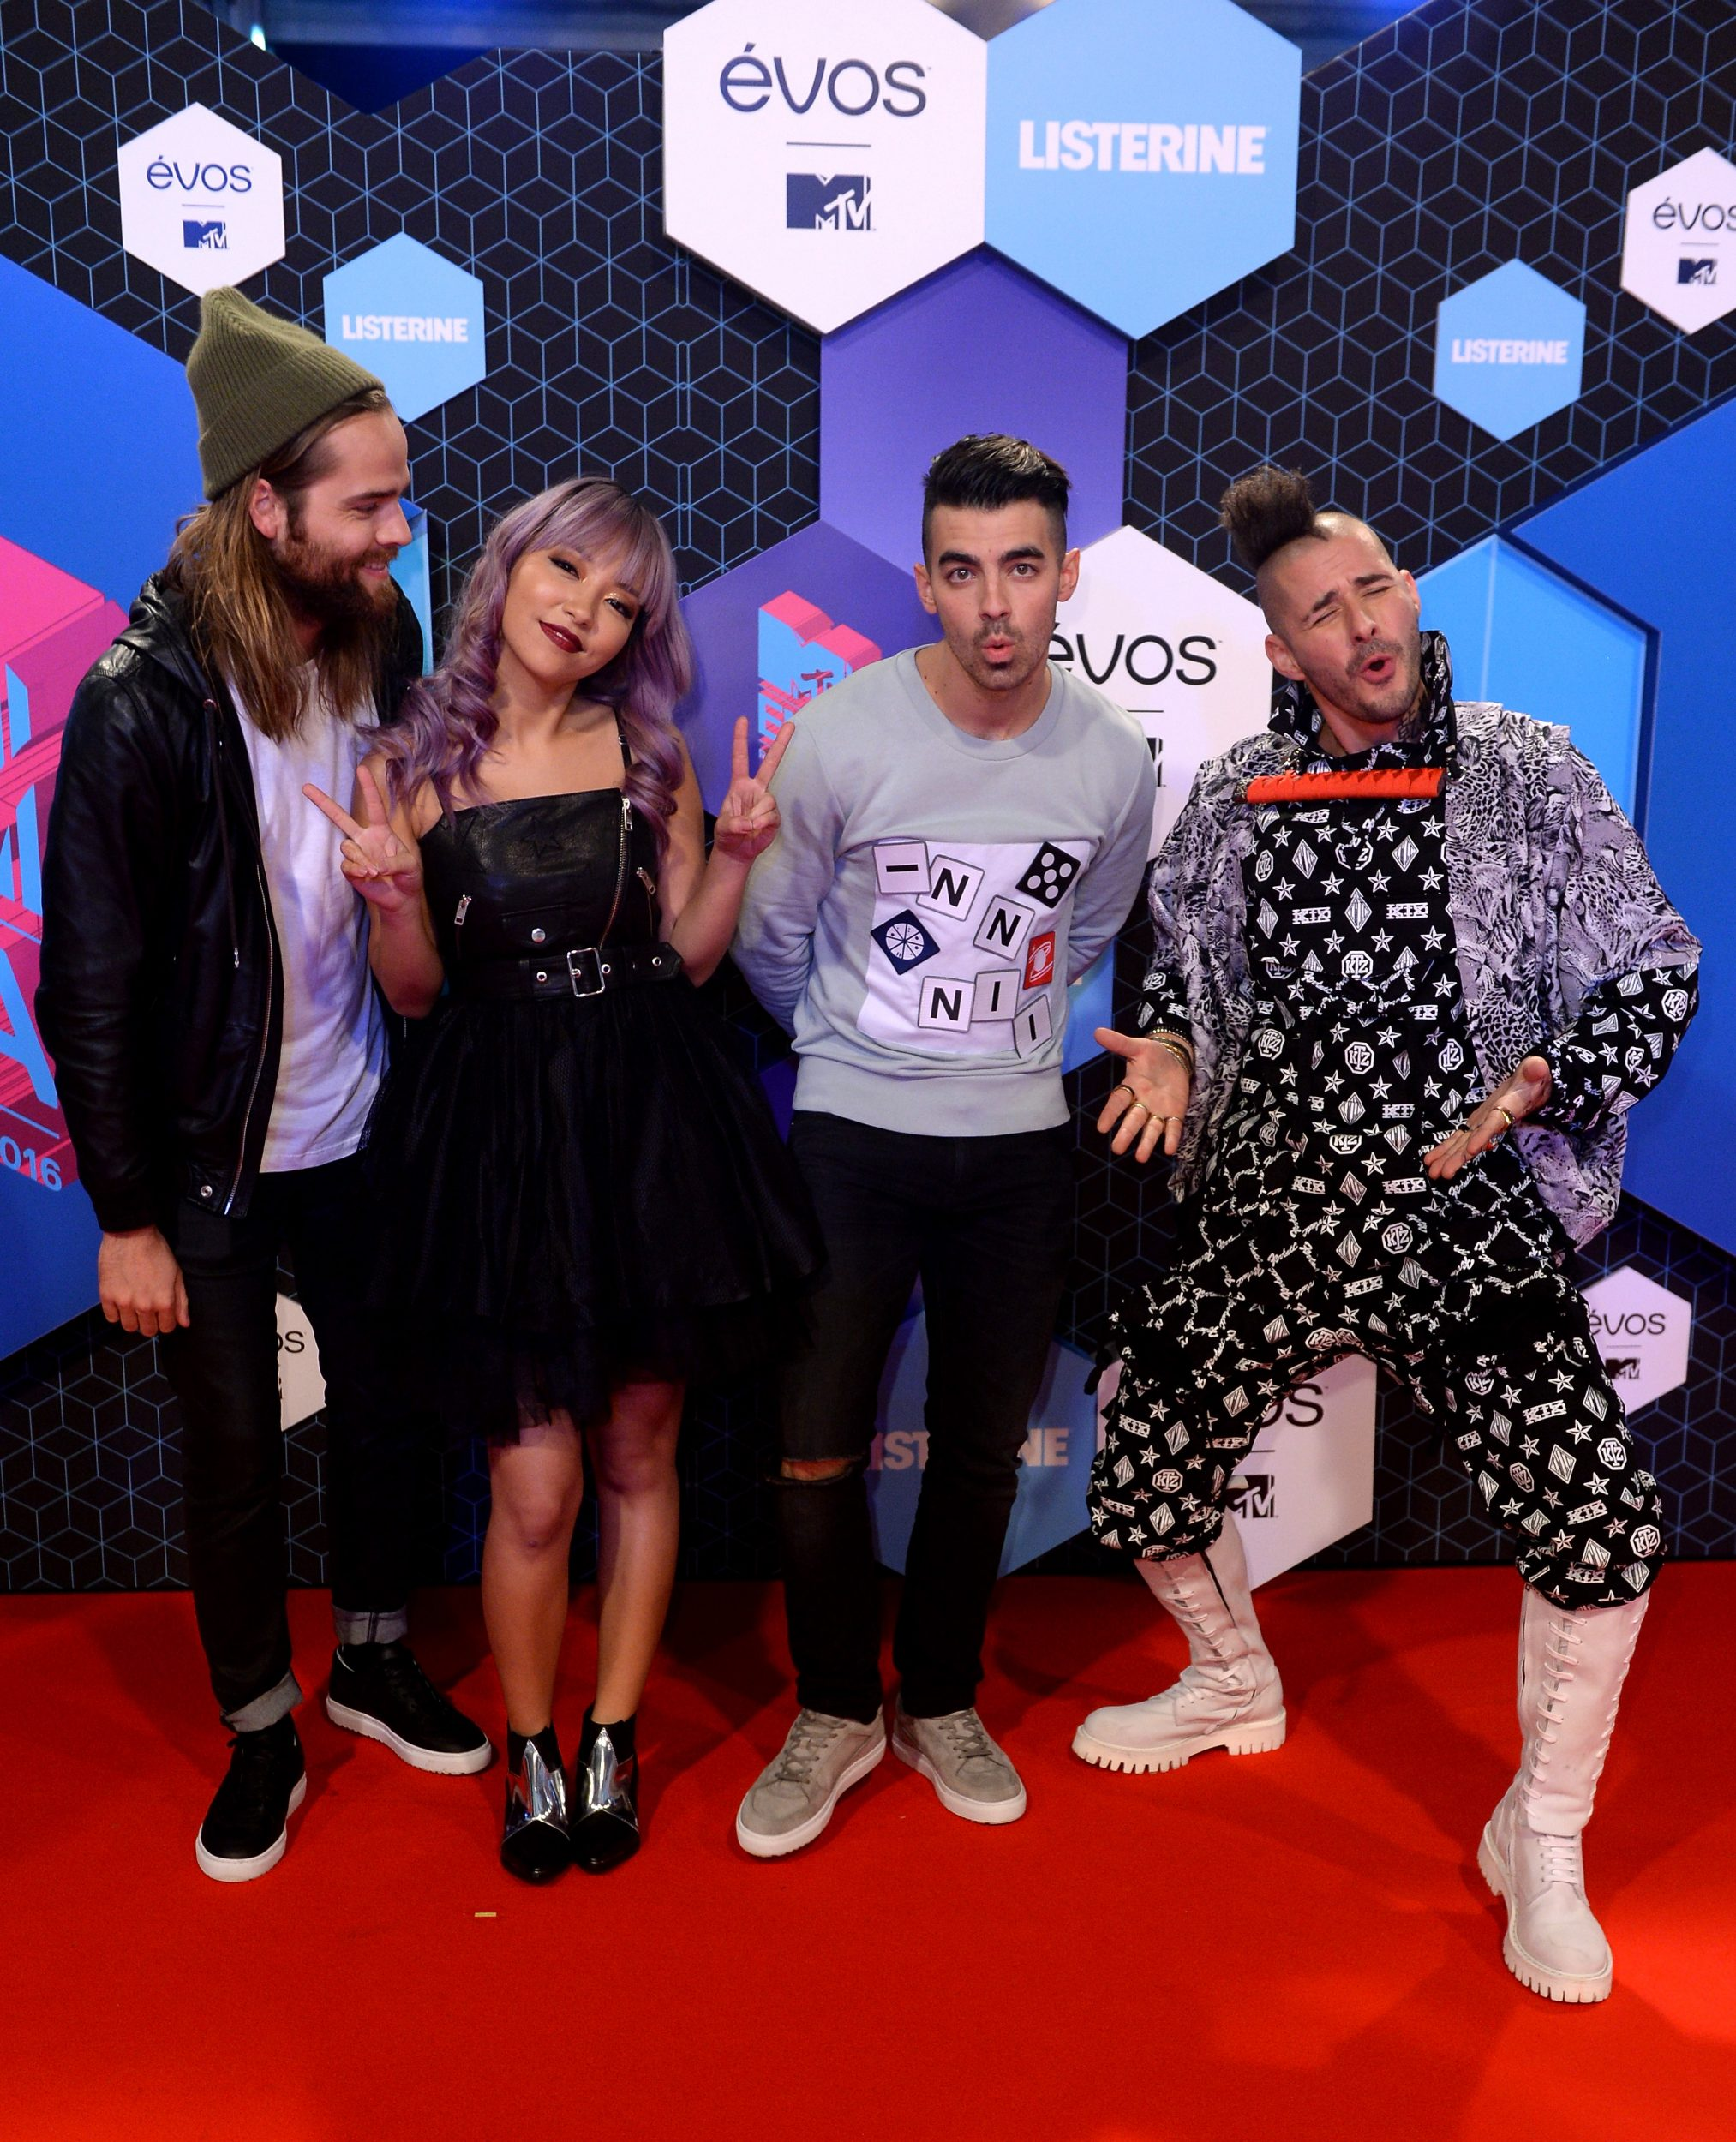 ROTTERDAM, NETHERLANDS - NOVEMBER 06: (EXCLUSIVE COVERAGE) (L-R) Jack Lawless, JinJoo Lee, Joe Jonas and Cole Whittle of DNCE attend the MTV Europe Music Awards 2016 on November 6, 2016 in Rotterdam, Netherlands. (Photo by Anthony Harvey/Getty Images for MTV) *** Local Caption *** Joe Jonas;Jack Lawless;JinJoo Lee;Cole Whittle